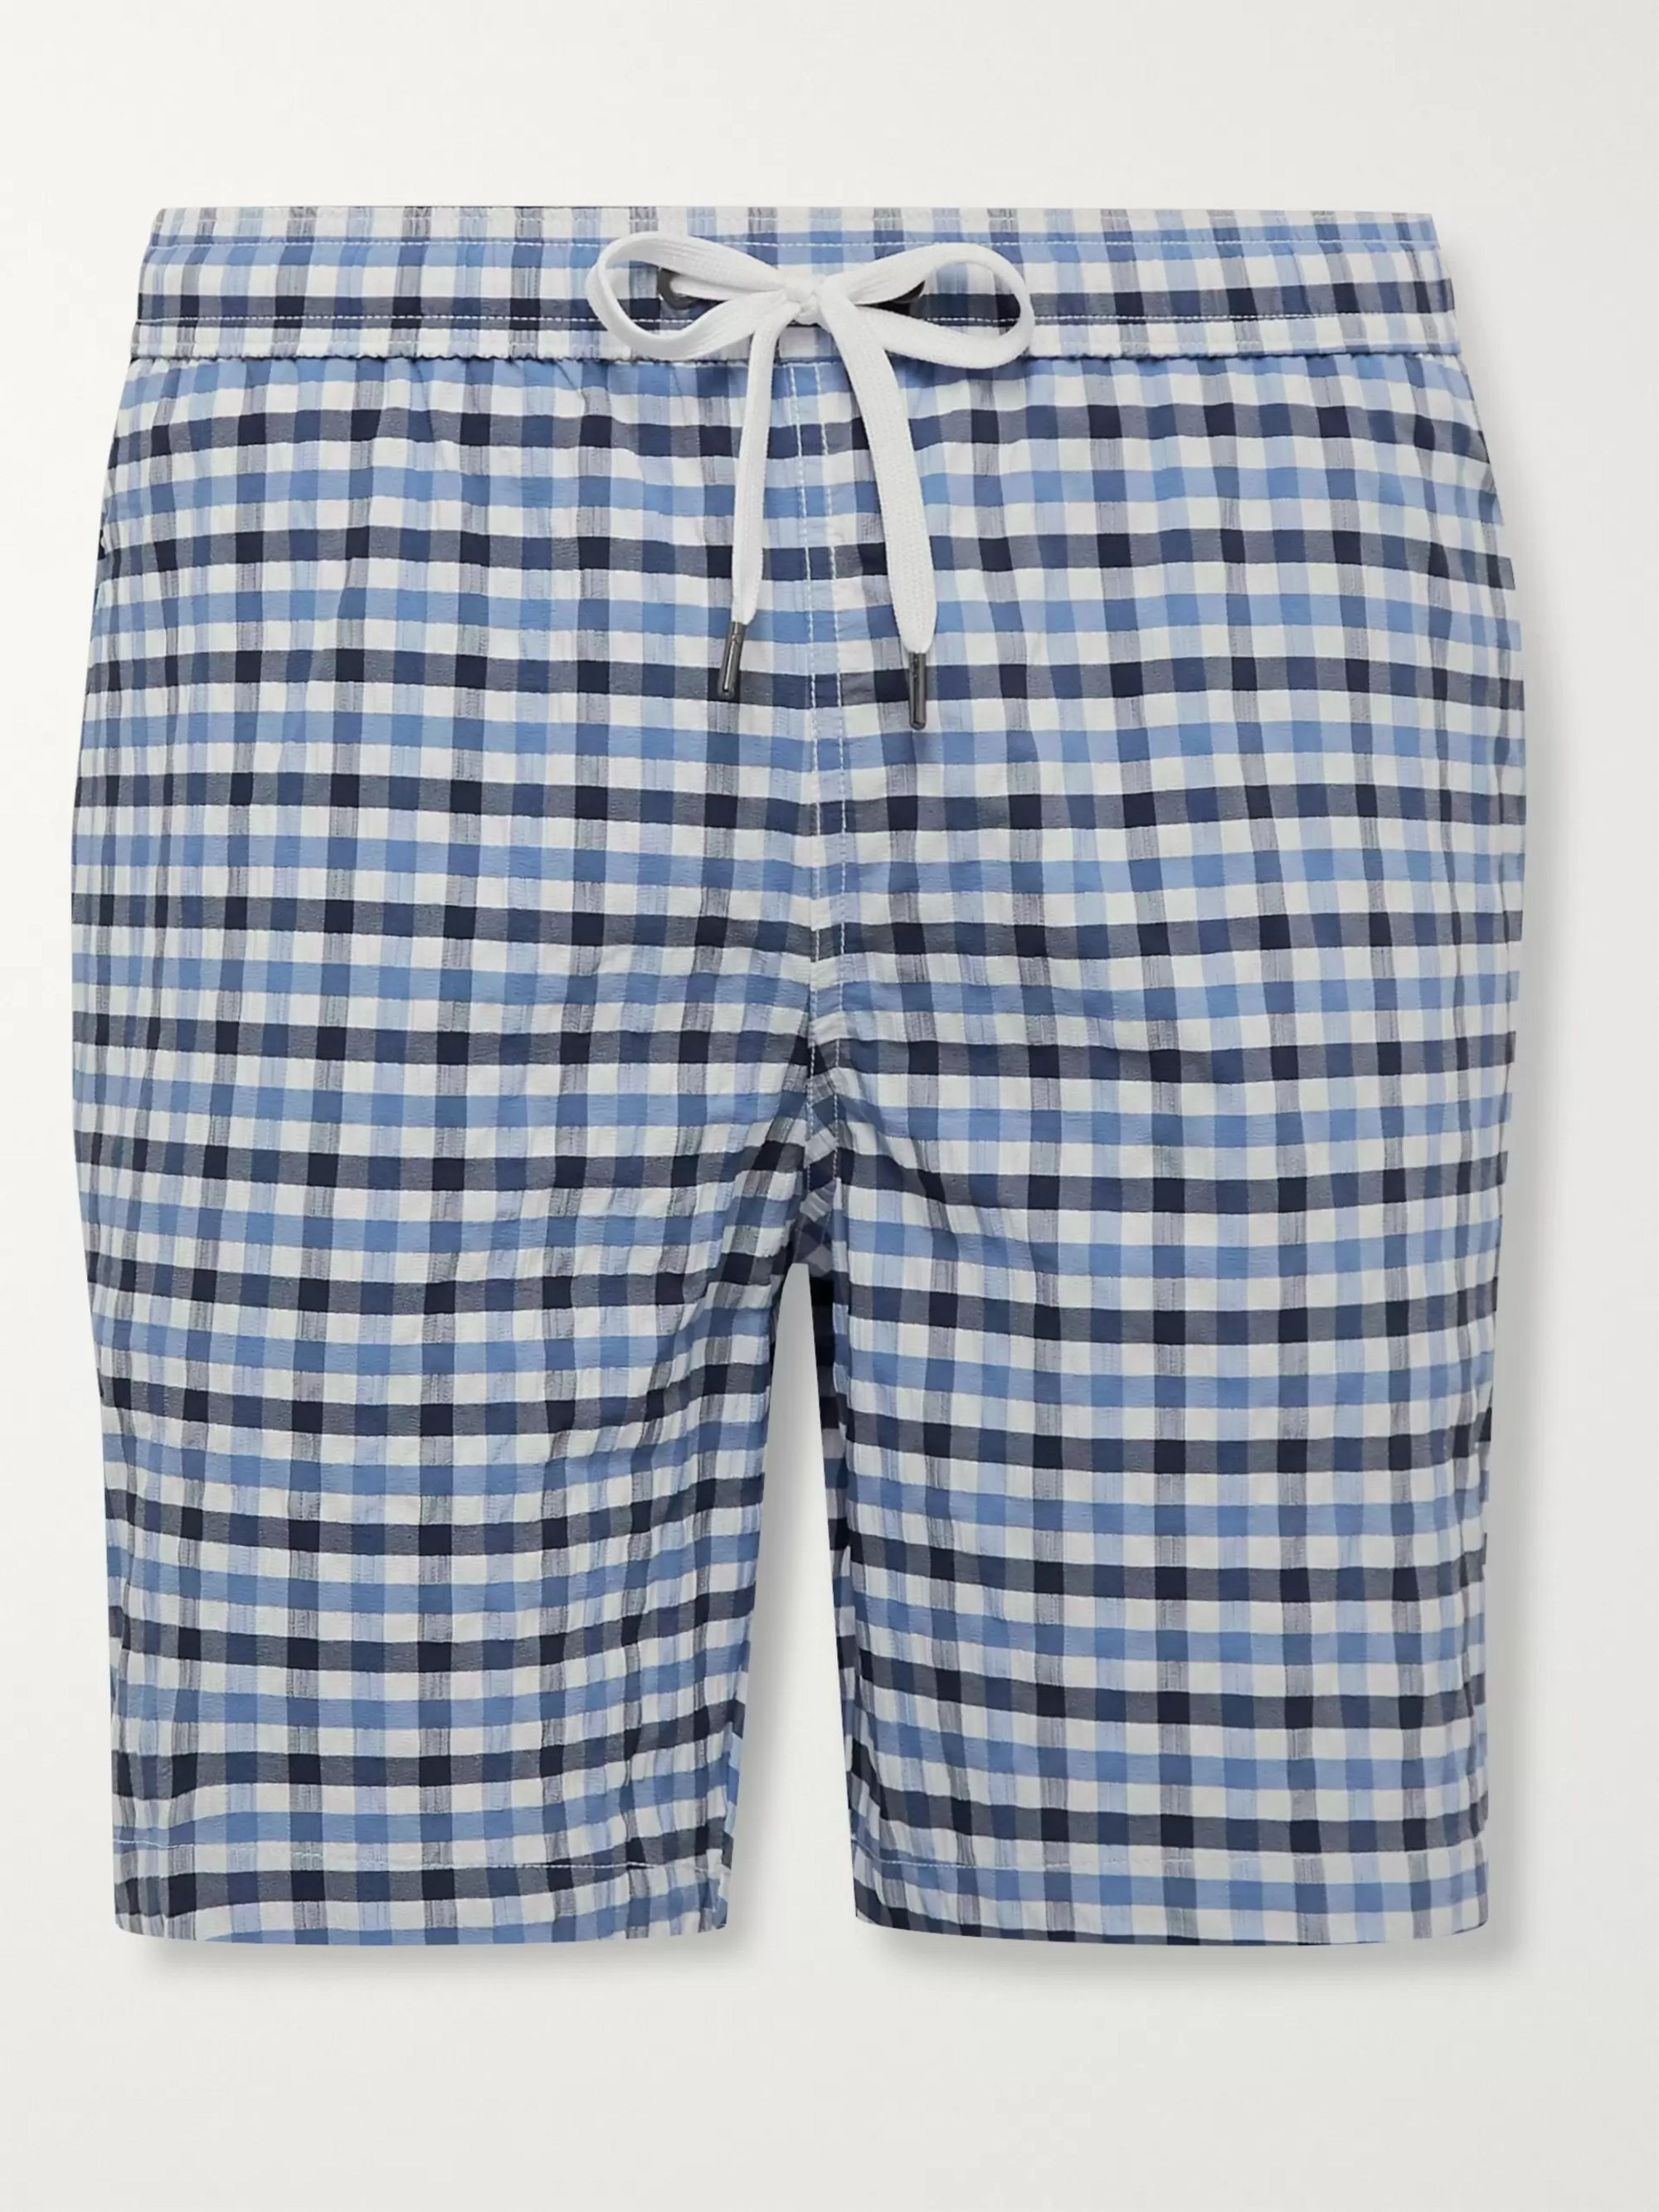 Onia Charles Long-Length Gingham Seersucker Swim Shorts